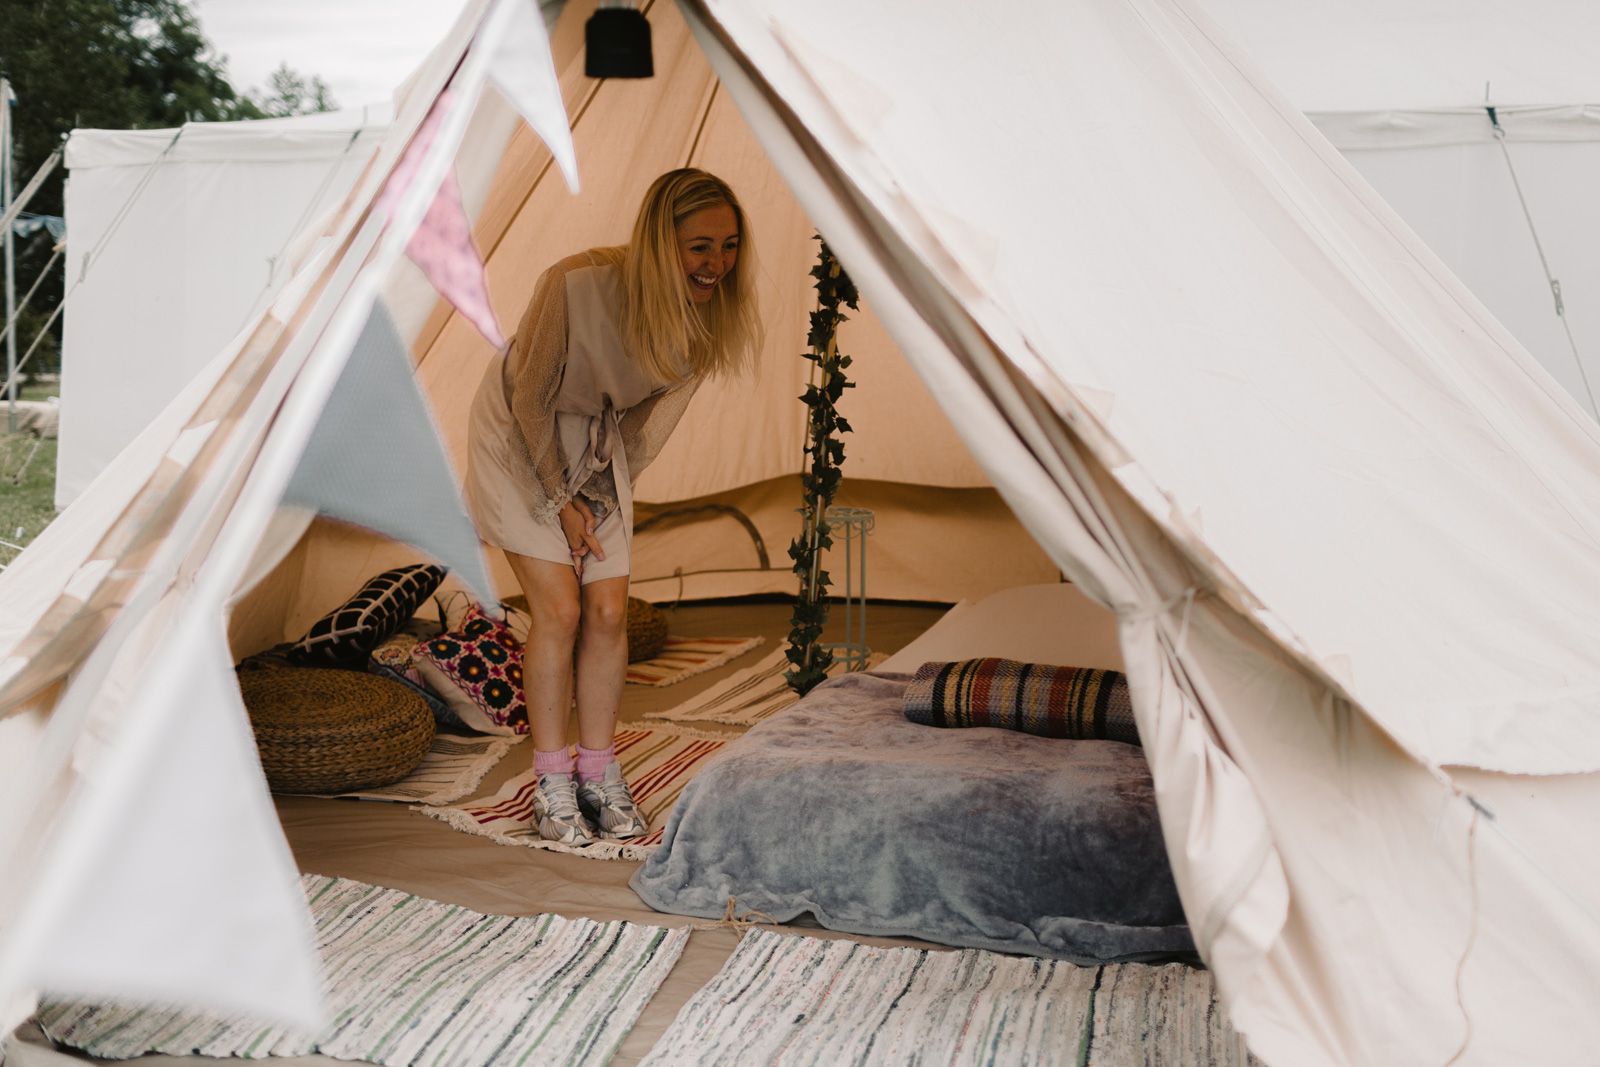 Bride inside tent laughing